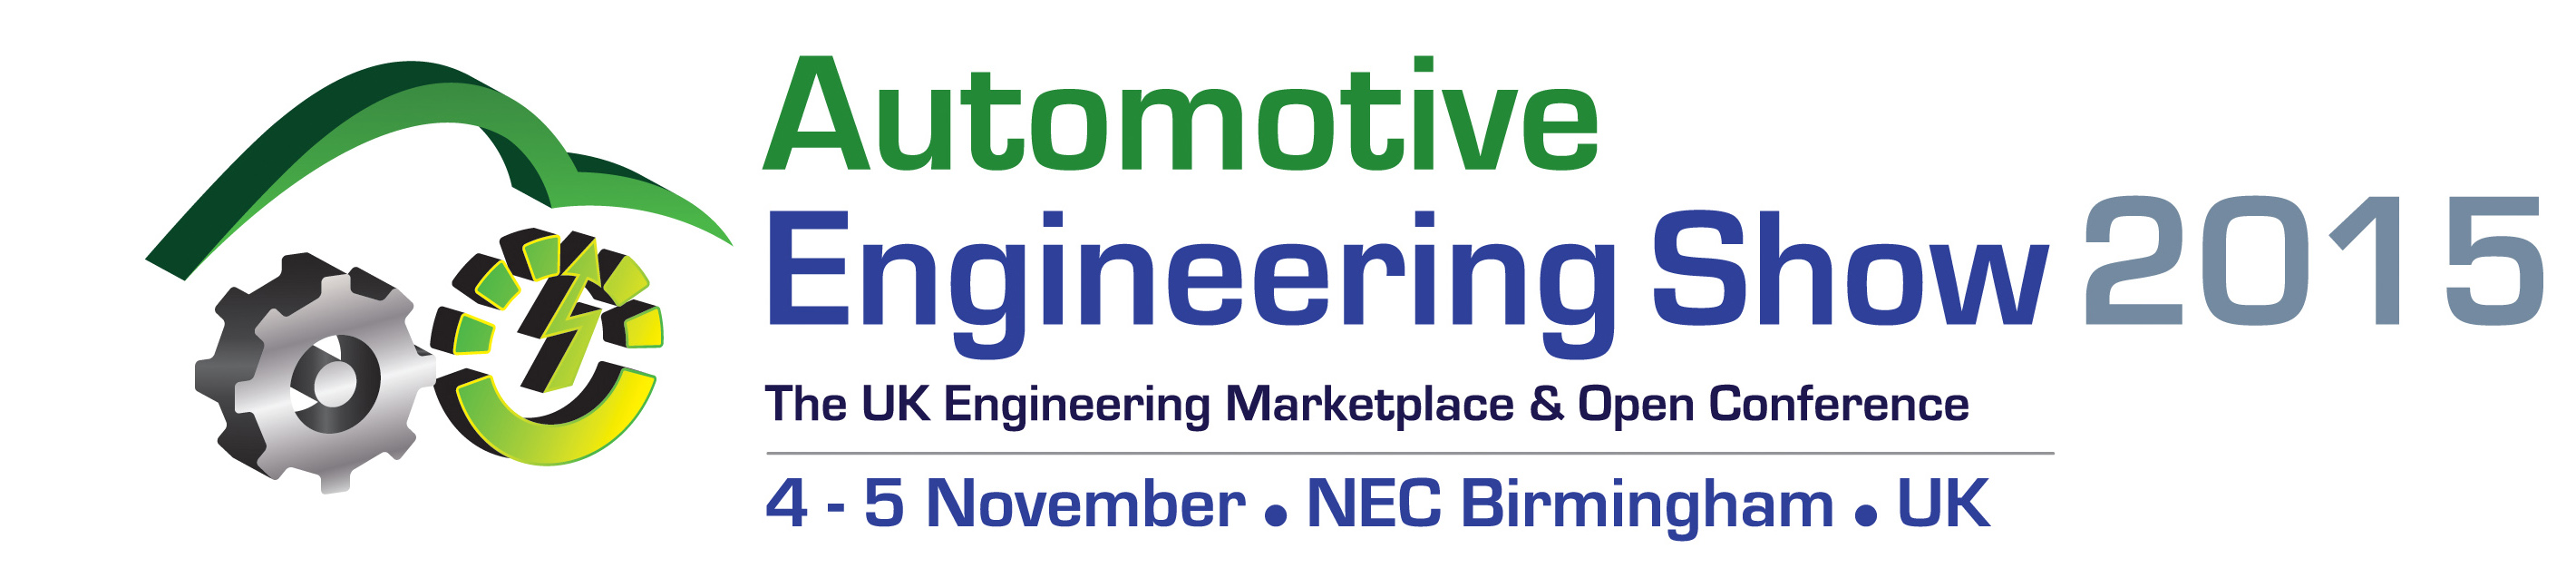 Advanced Engineering Show logo